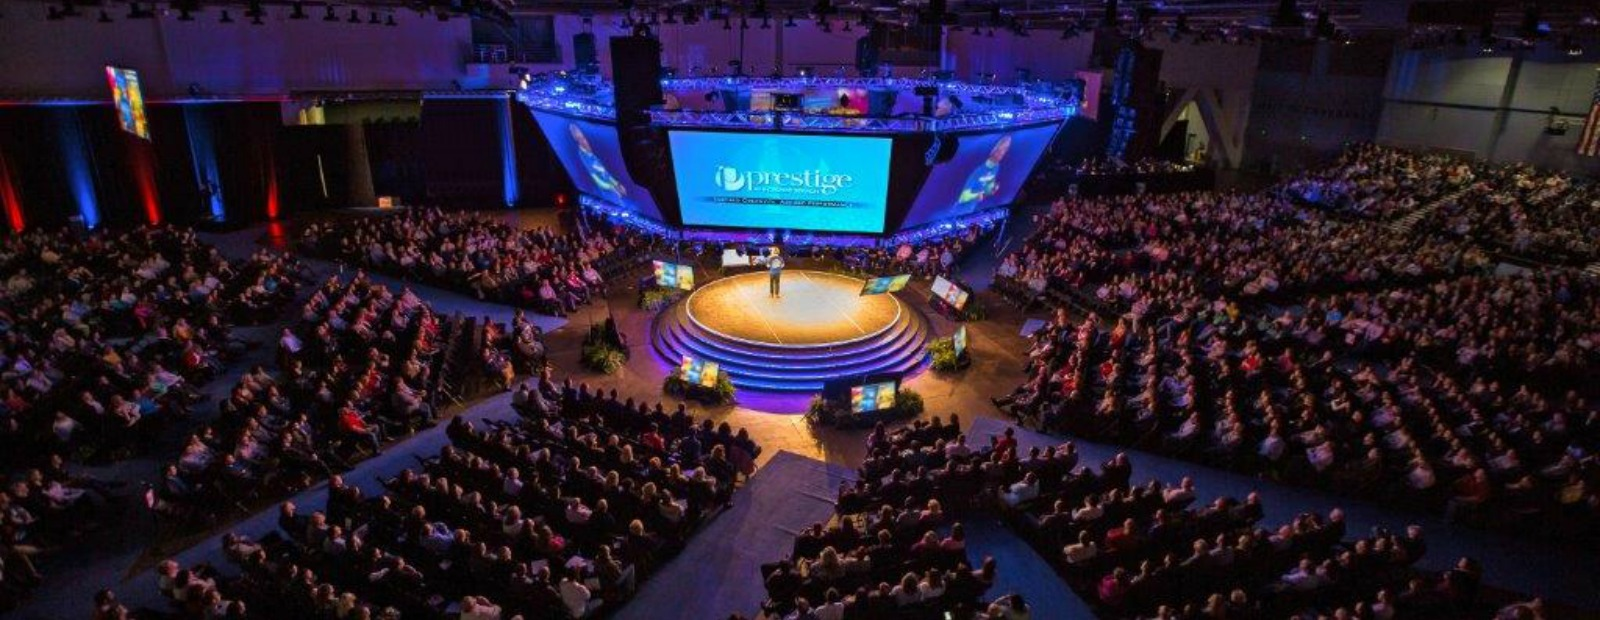 "Prestige AV & Creative Services supports corporate meetings of all sizes including this ""in the round"" multi-screen set for 4,000 attendees. <span class='image-credits'></span>"